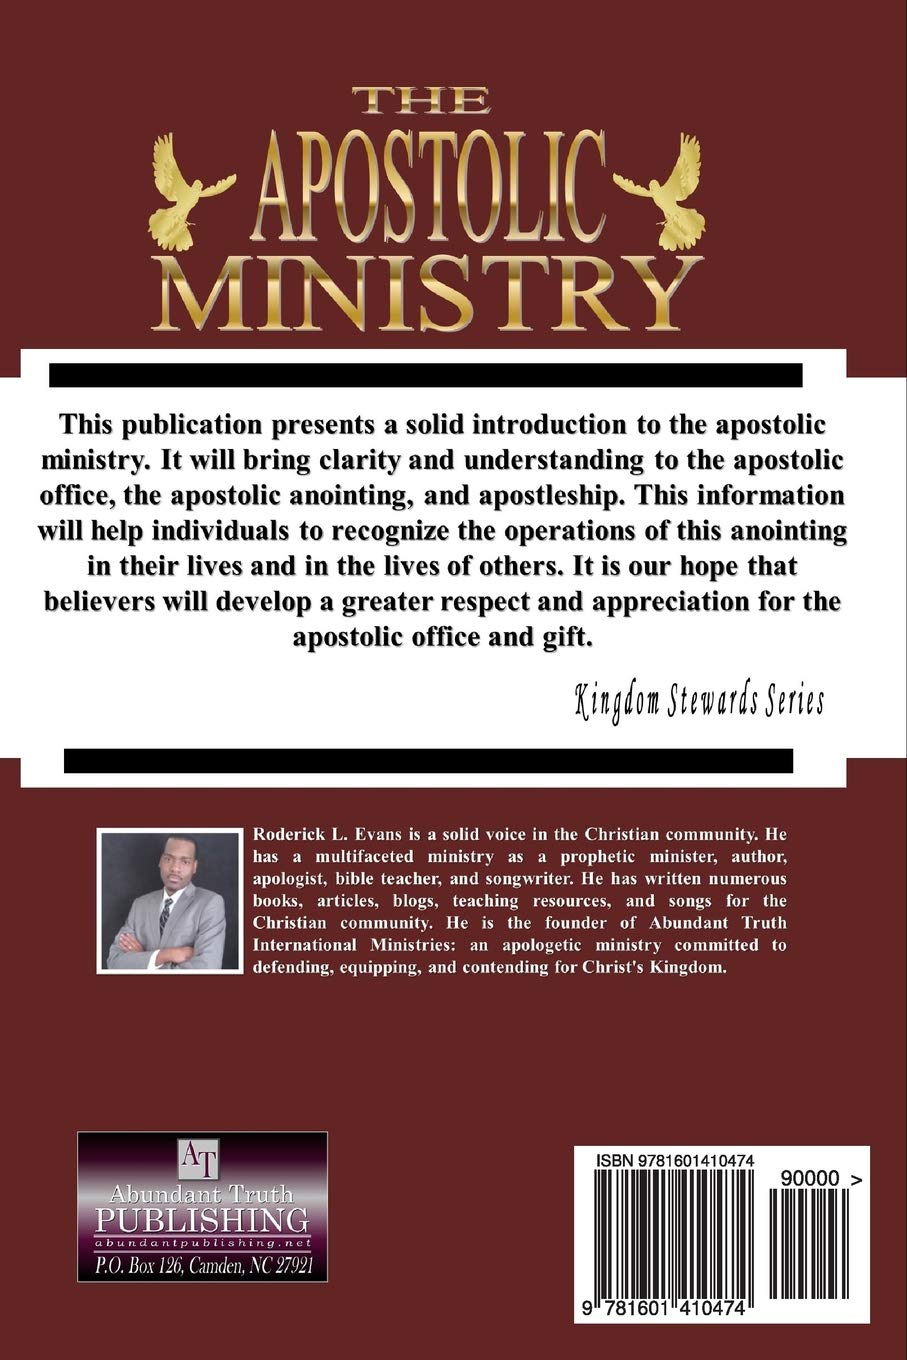 The Apostolic Ministry: Exploring The Apostolic Office And Gift: Roderick  L. Evans: 9781601410474: Amazon.com: Books